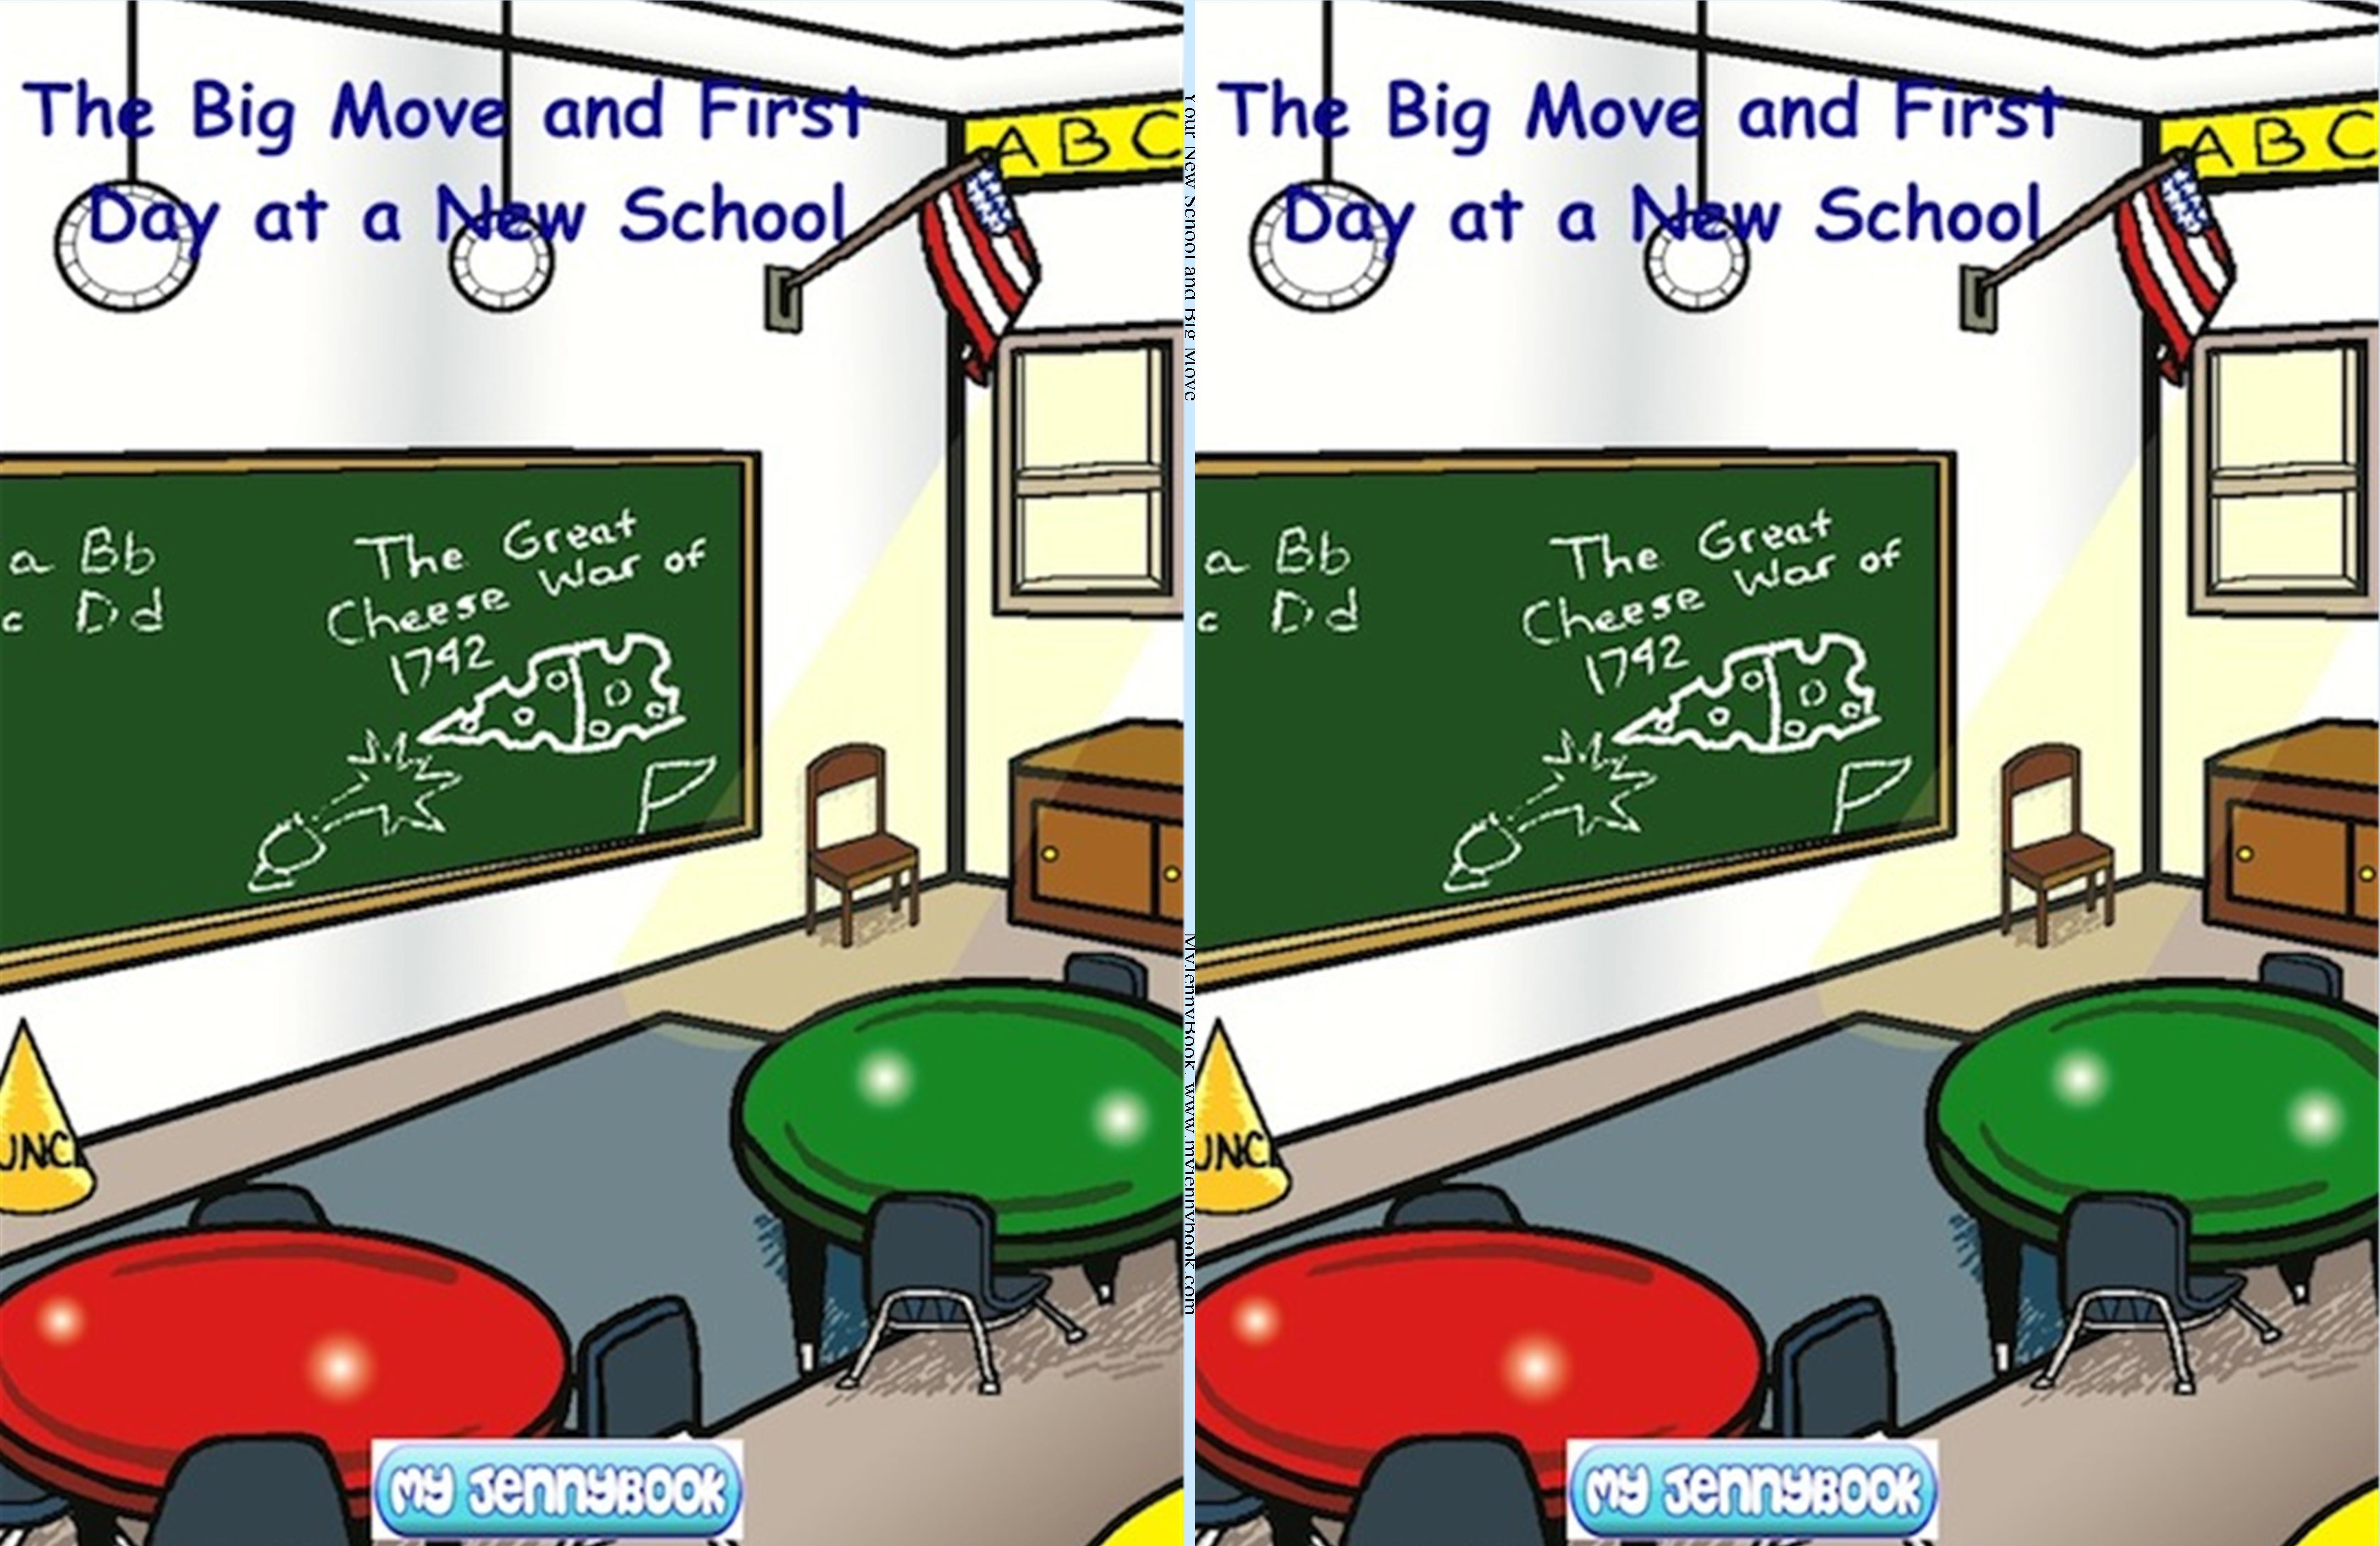 Your New School and Big Move cover image